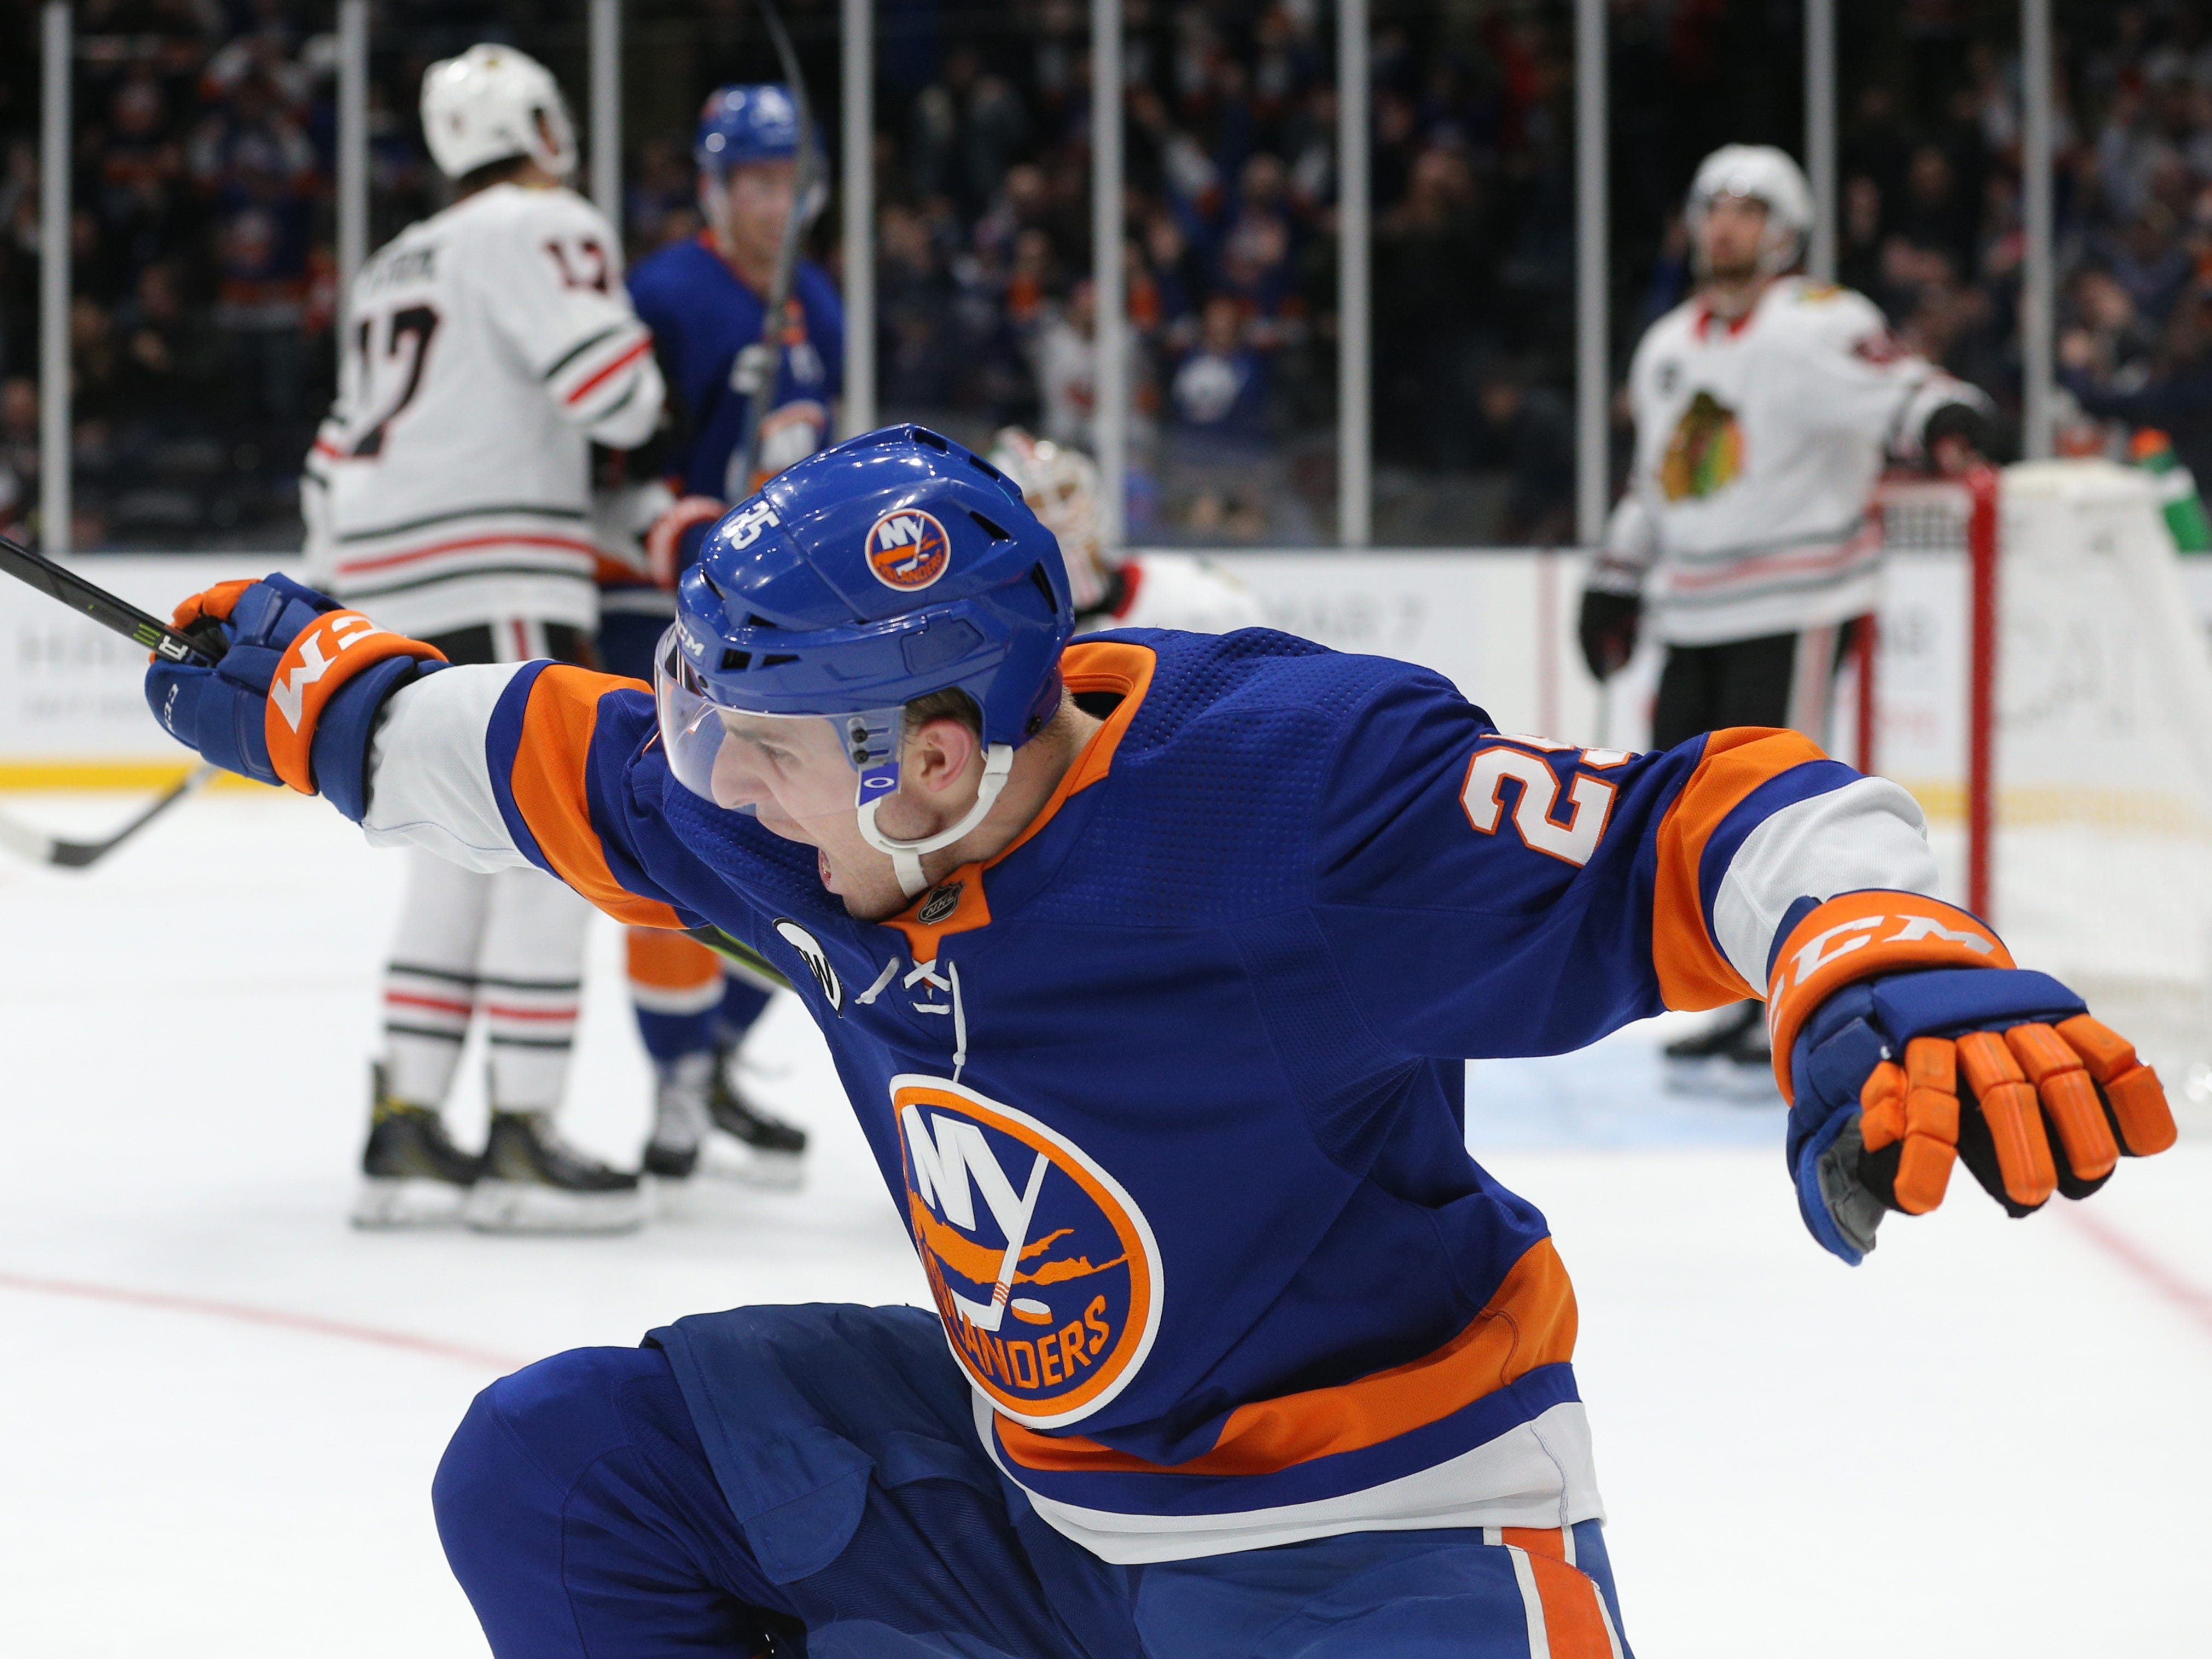 Jan. 3: New York Islanders defenseman Devon Toews celebrates his overtime goal against the Chicago Blackhawks. It was his first career NHL goal.